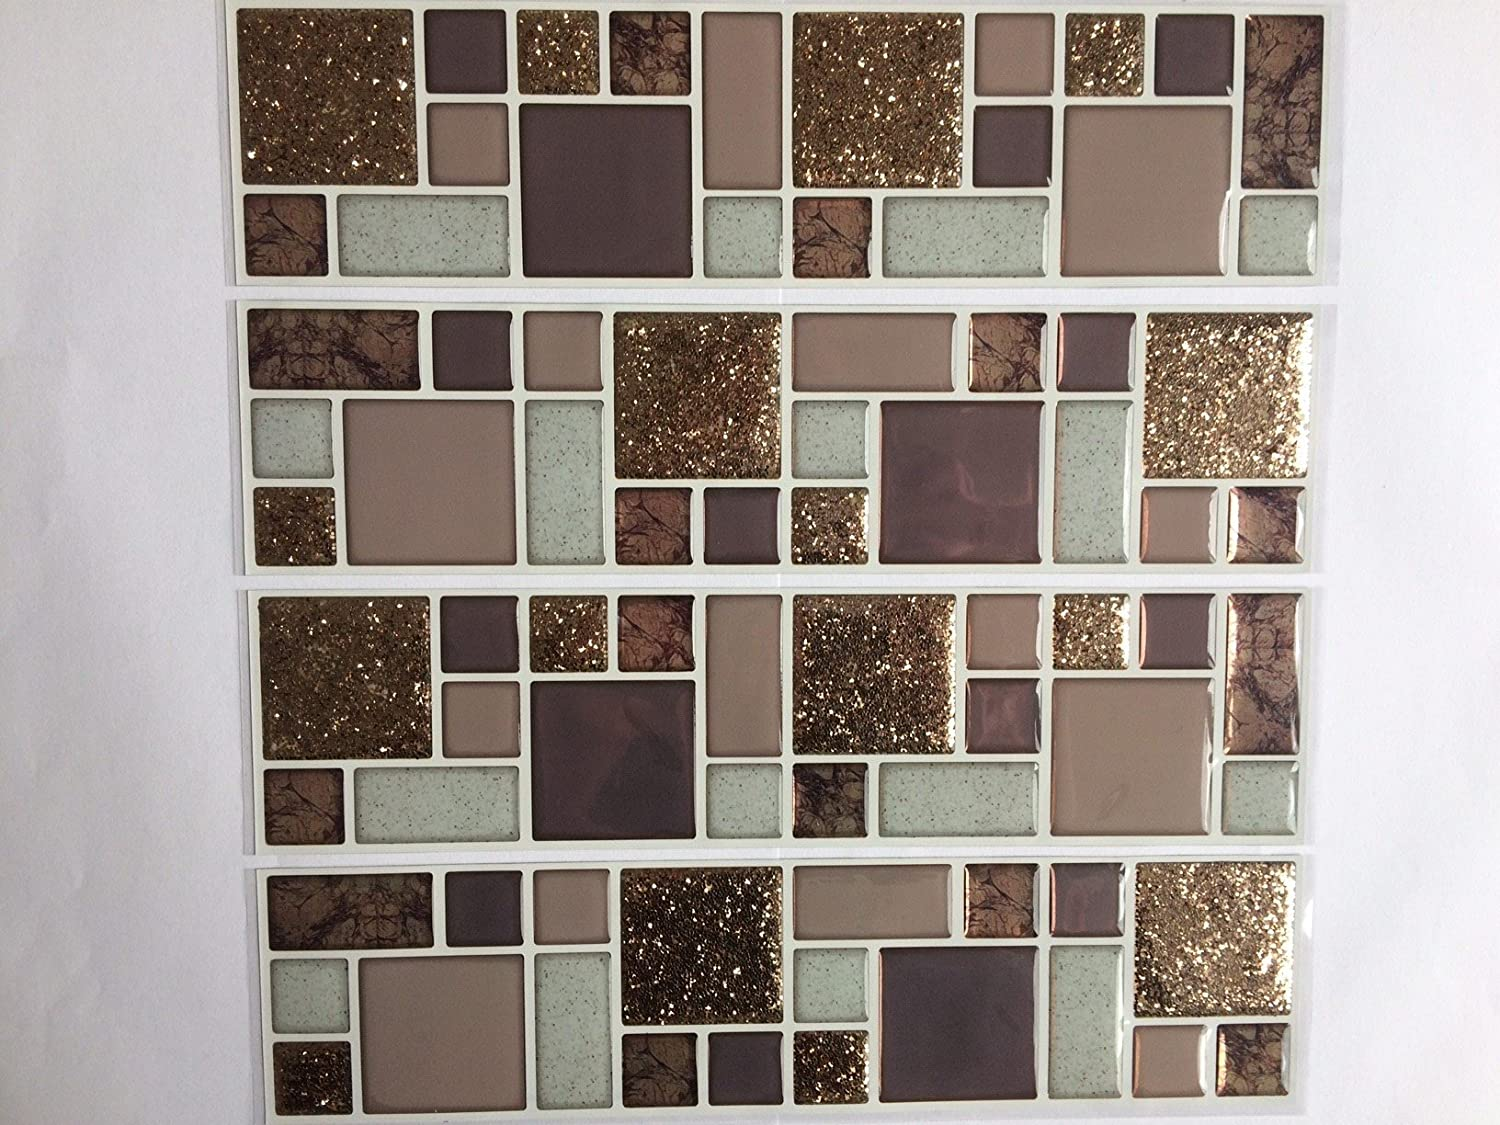 Piastrelle bagno mosaico marrone latest ecopelle marrone for Mosaico adesivo per cucina